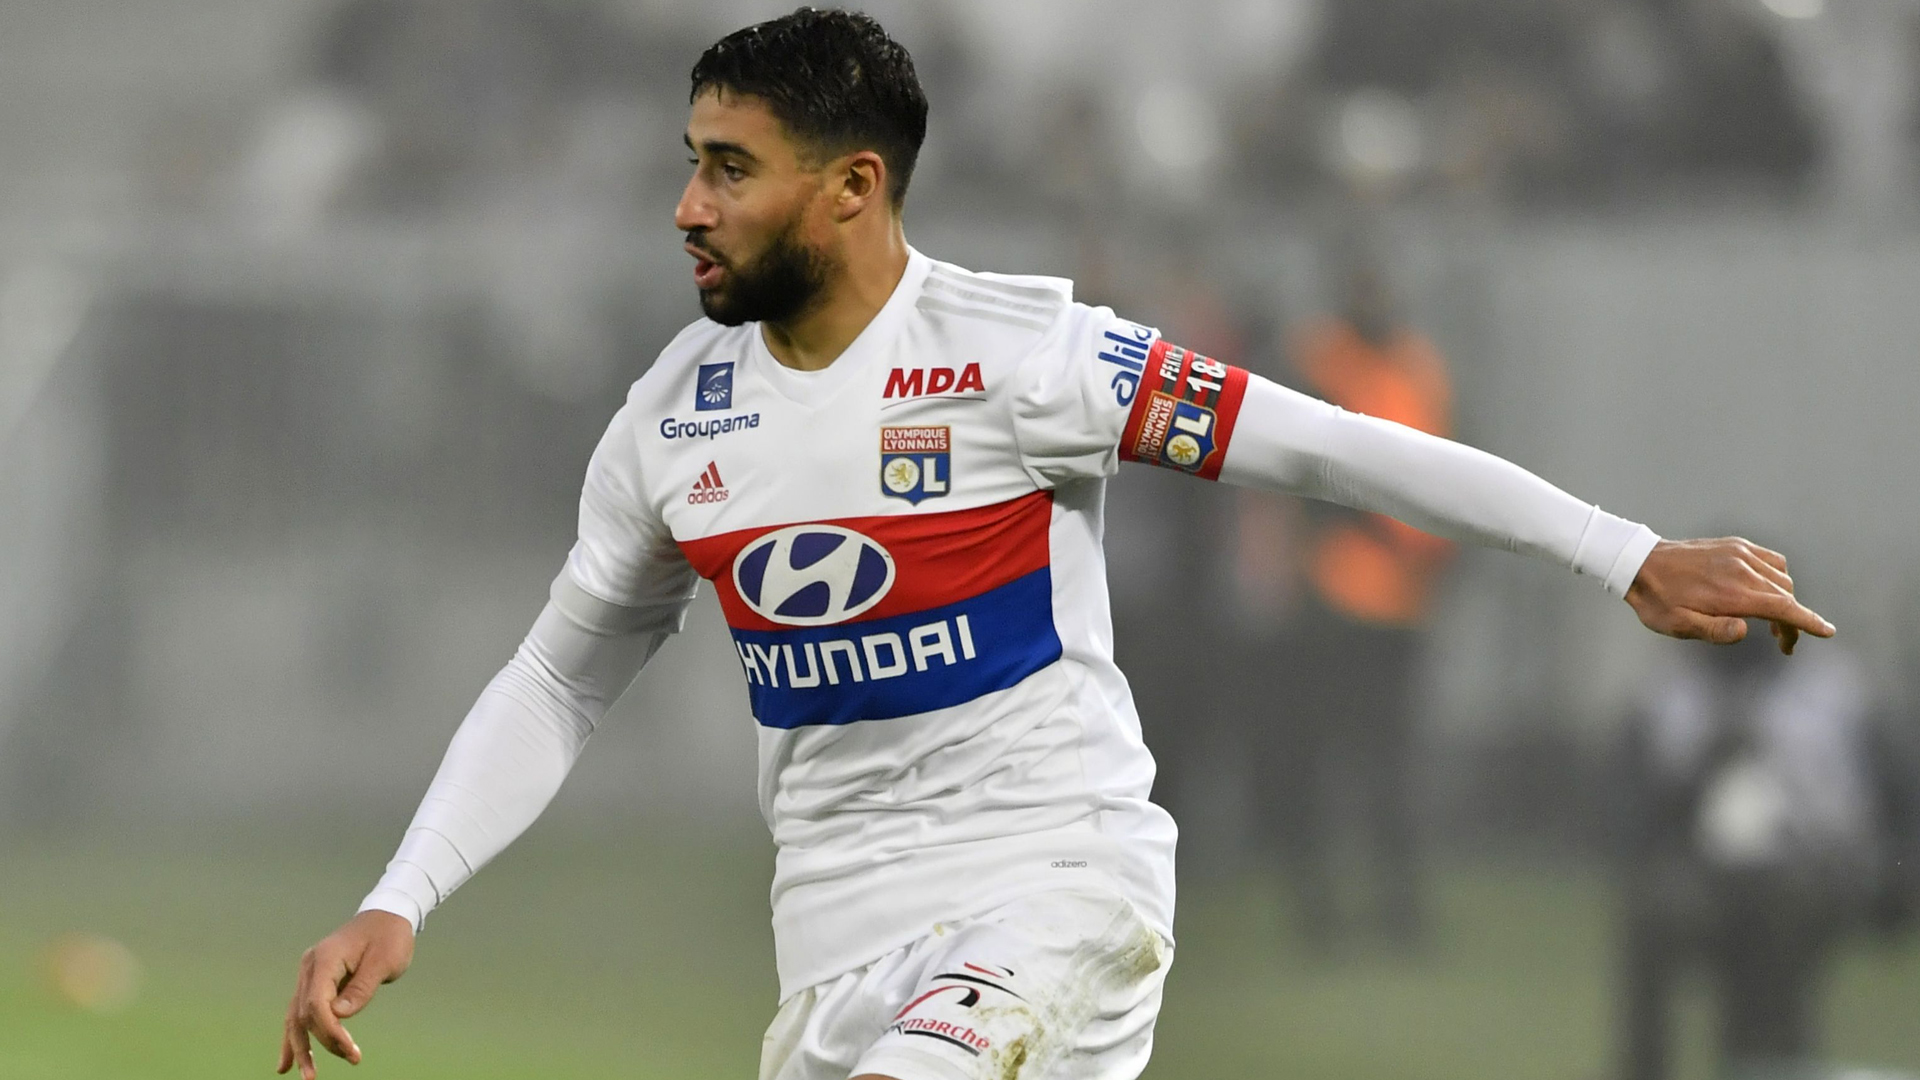 Jurgen Klopp meets Nabil Fekir to discuss Liverpool FC transfer